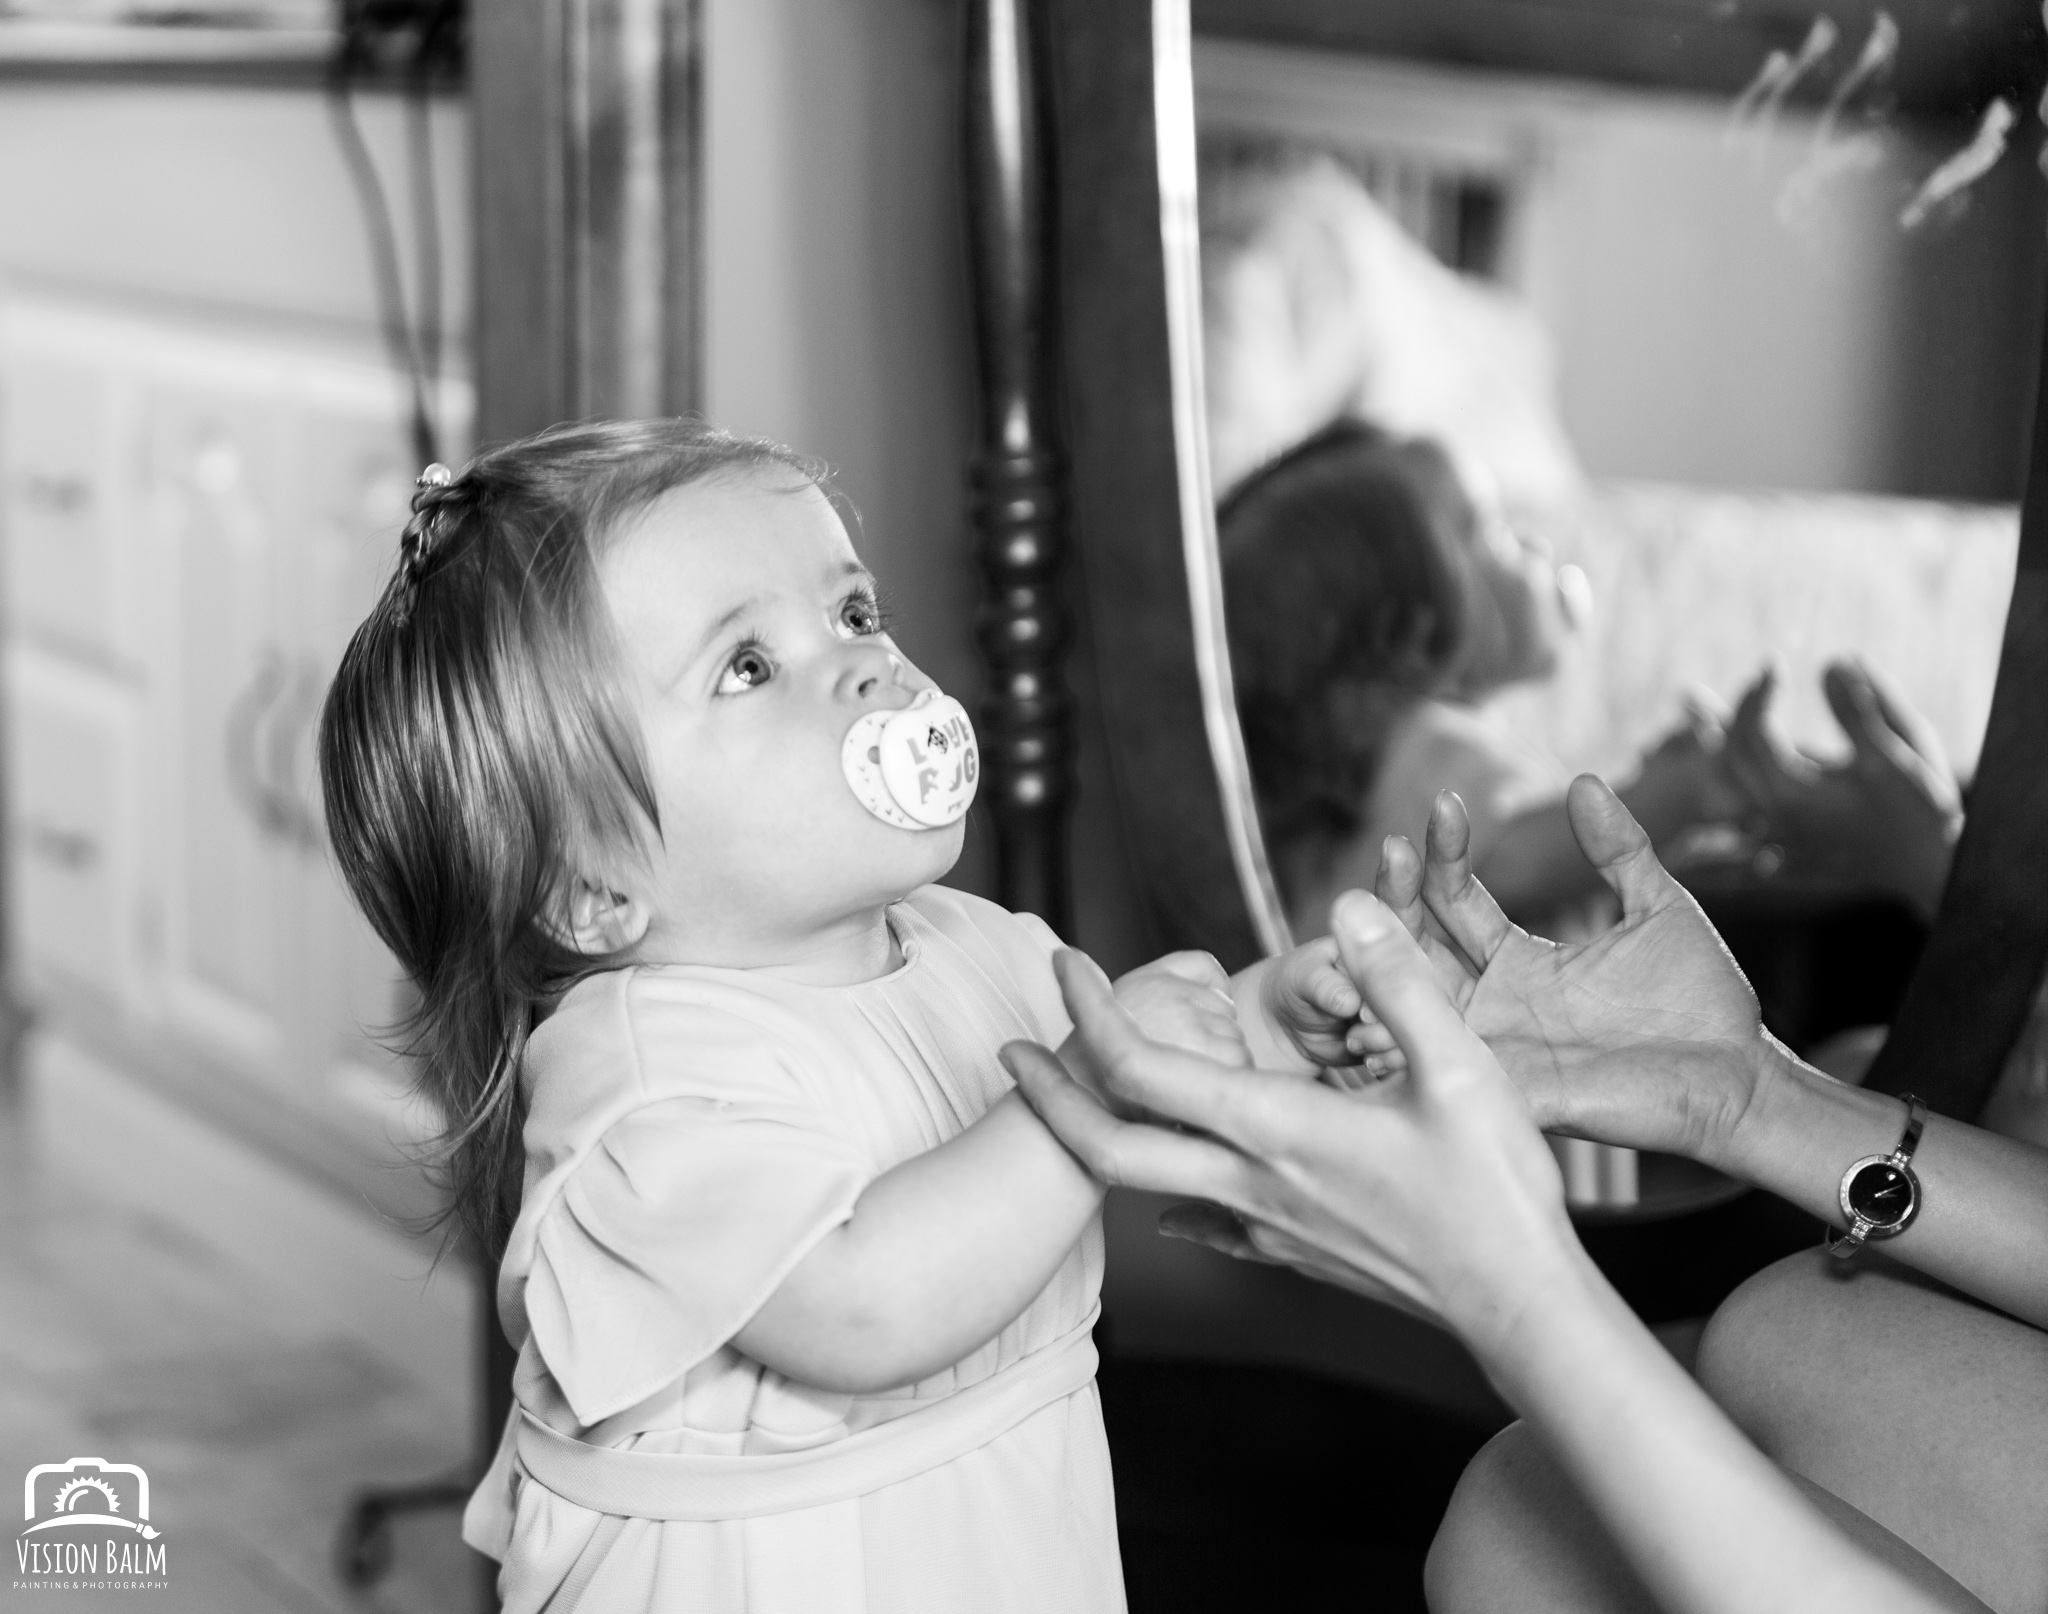 Lifestyle portrait of baby girl before the wedding in Zuka's Hilltop Barn by Vision Balm in Charleston, SC.